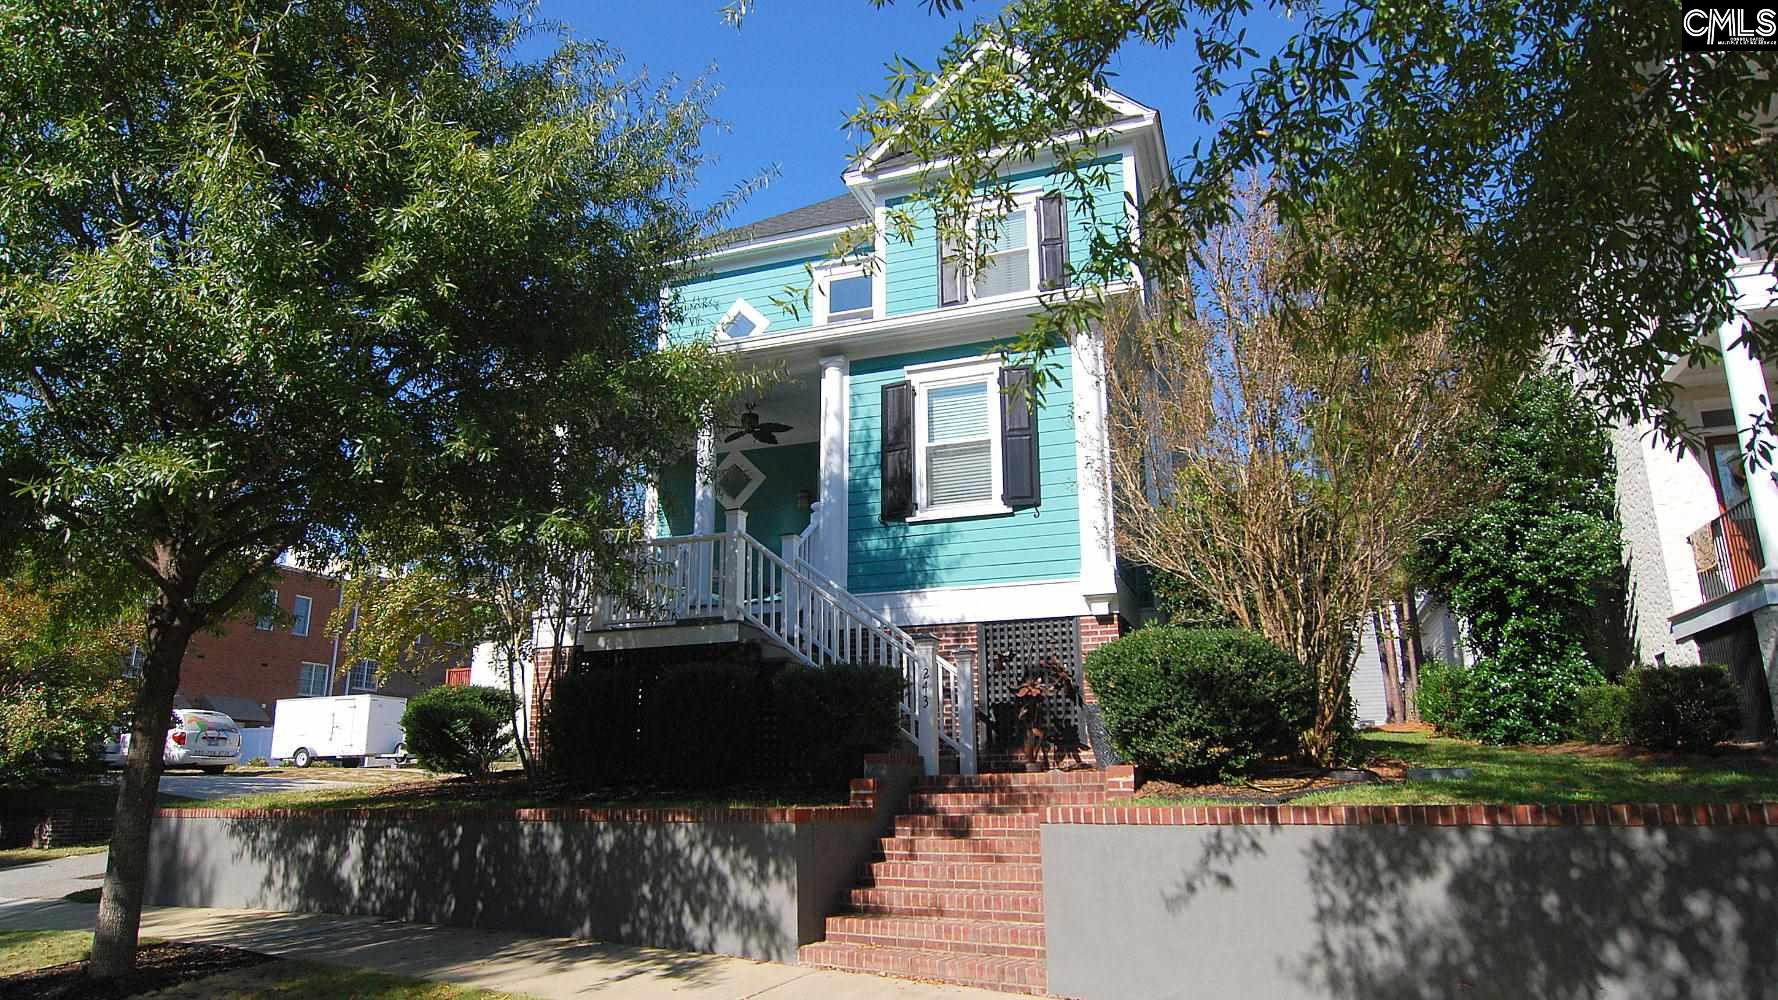 243 Lake Carolina Blvd. Columbia, SC 29229